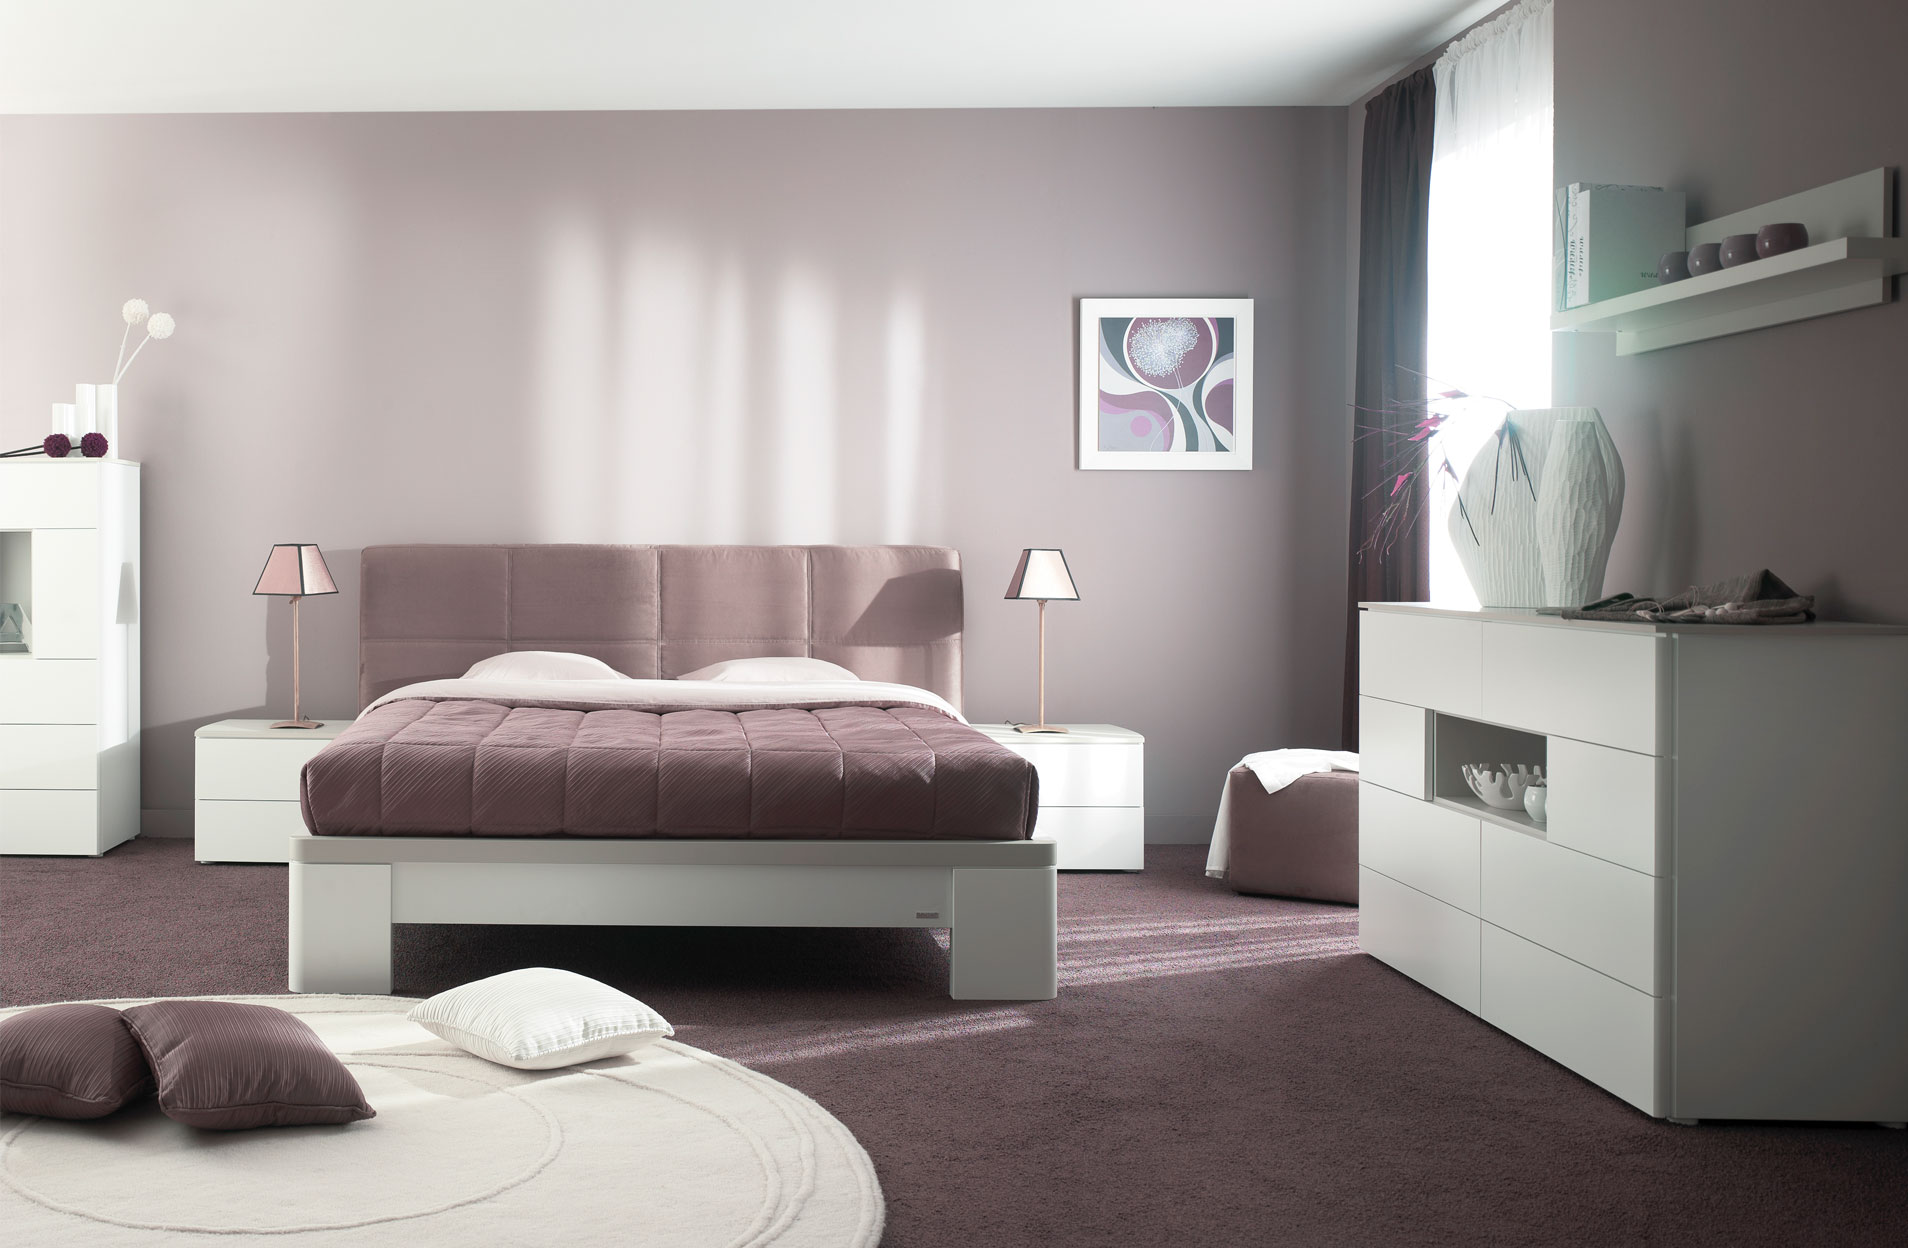 Inspiration d coration de chambre contemporaine gautier opalia for Maison meuble